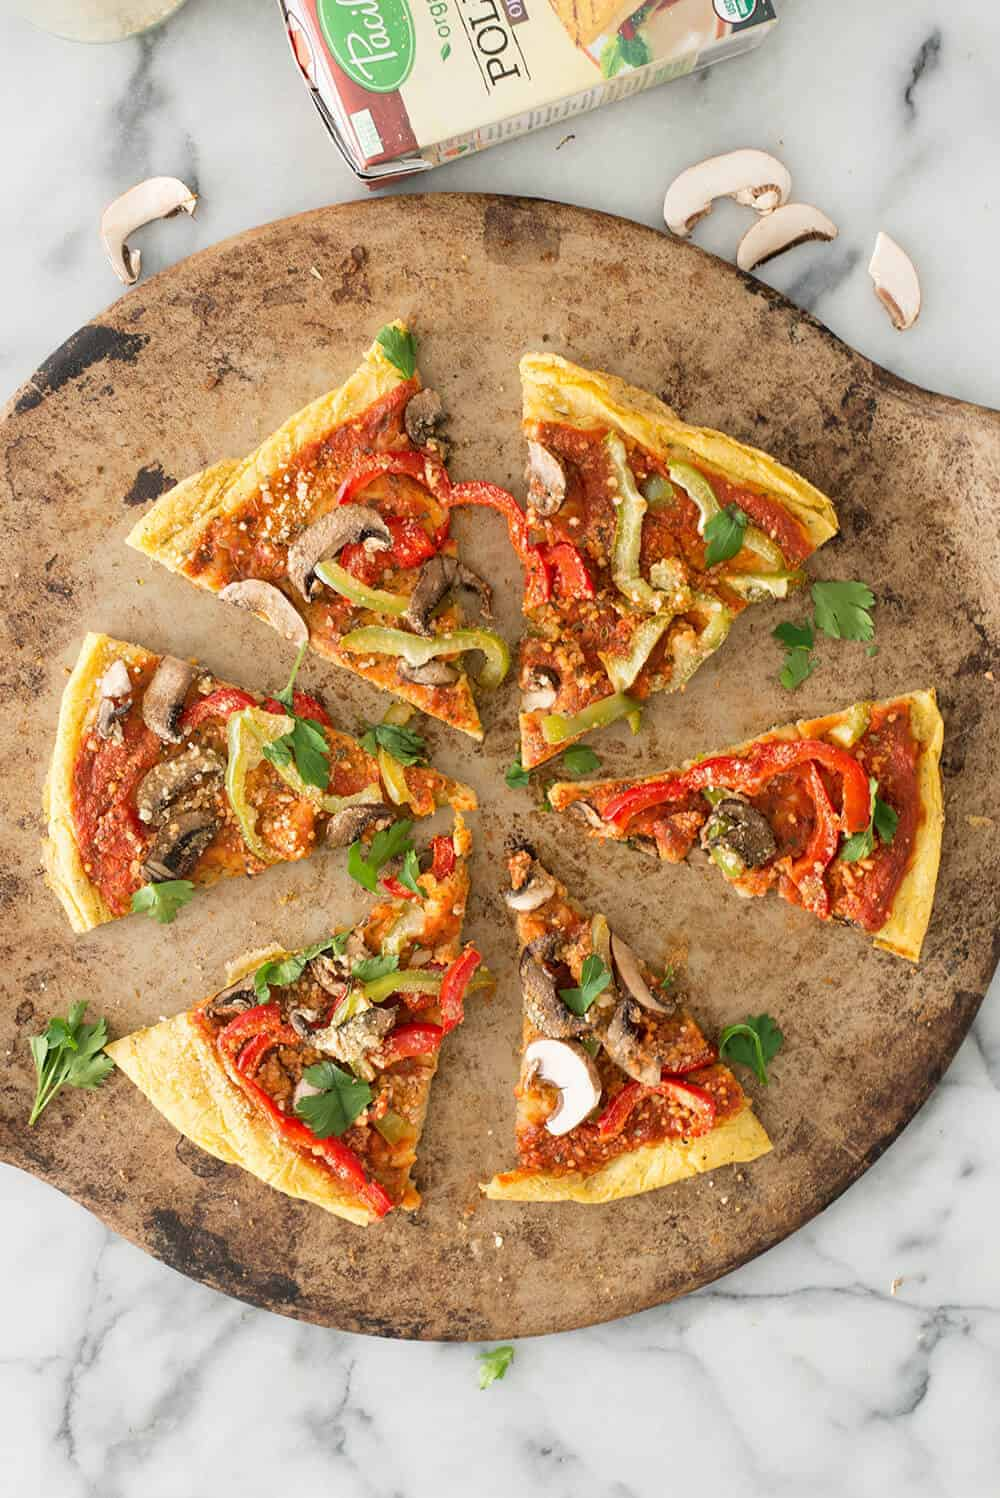 Polenta Pizza! Healthy, gluten-free take on pizza. Creamy polenta crust topped with sauce, veggies and vegan parmesan cheese. A must-make. | www.delishknowledge.com